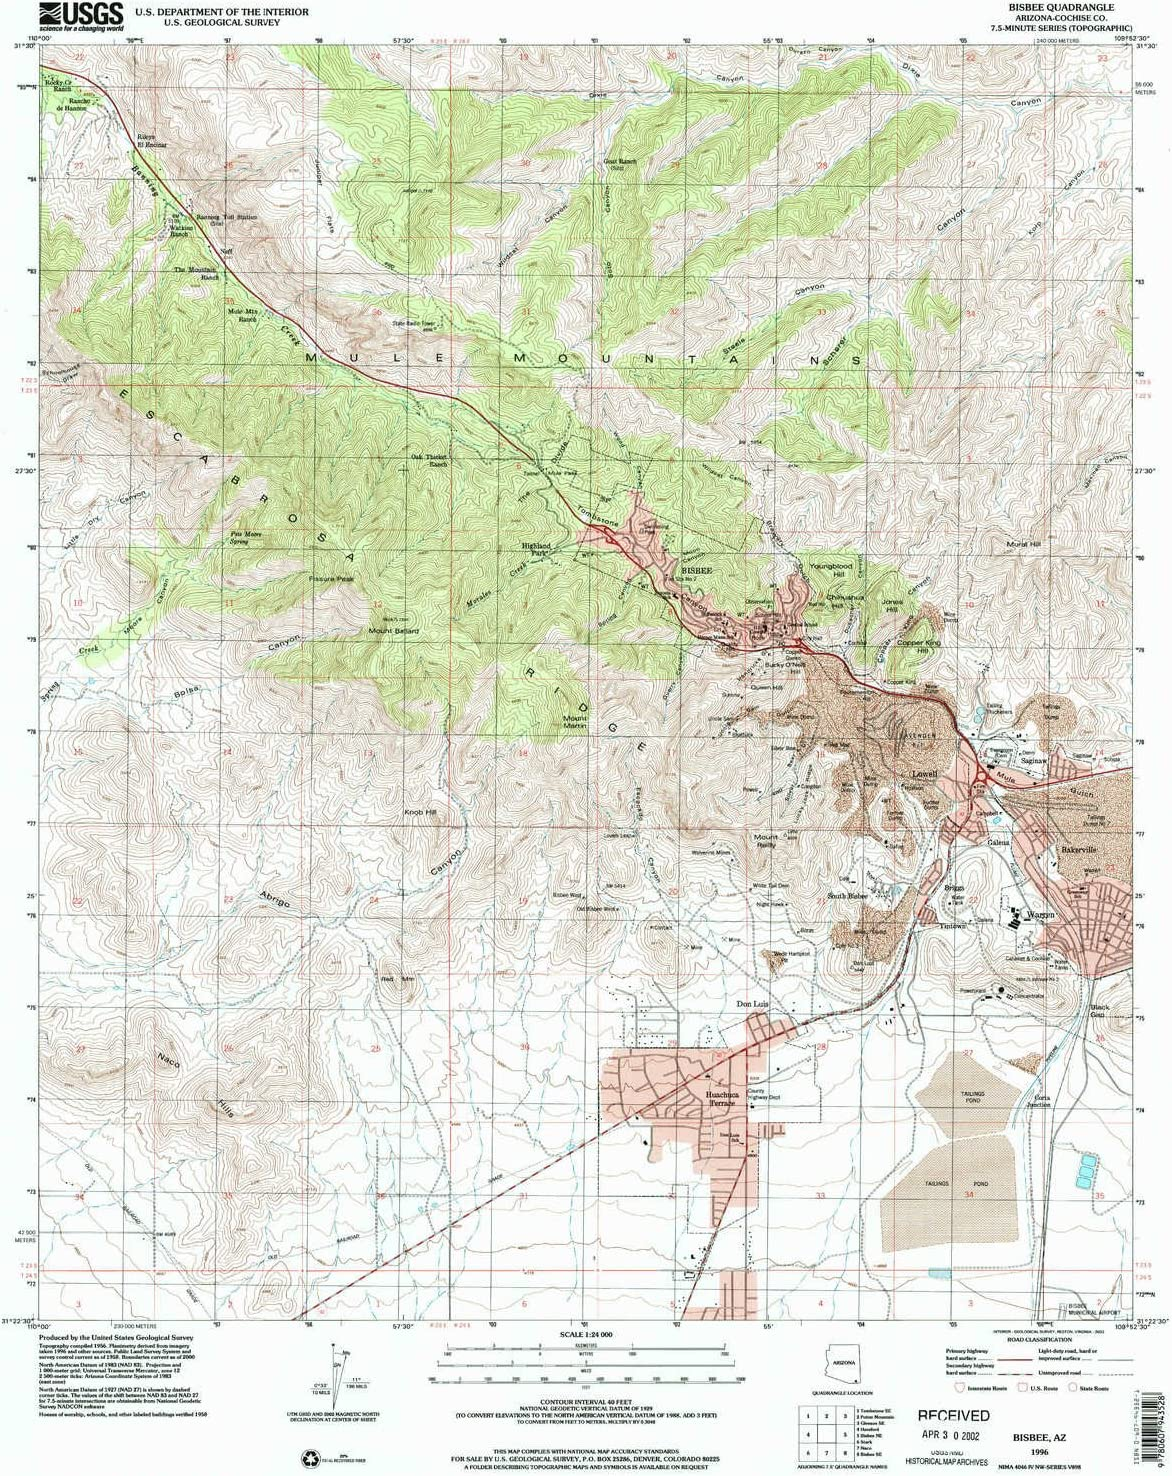 7.5 X 7.5 Minute 1:24000 Scale Historical 1998 26.7 x 21.6 in YellowMaps Aripine AZ topo map Updated 2000